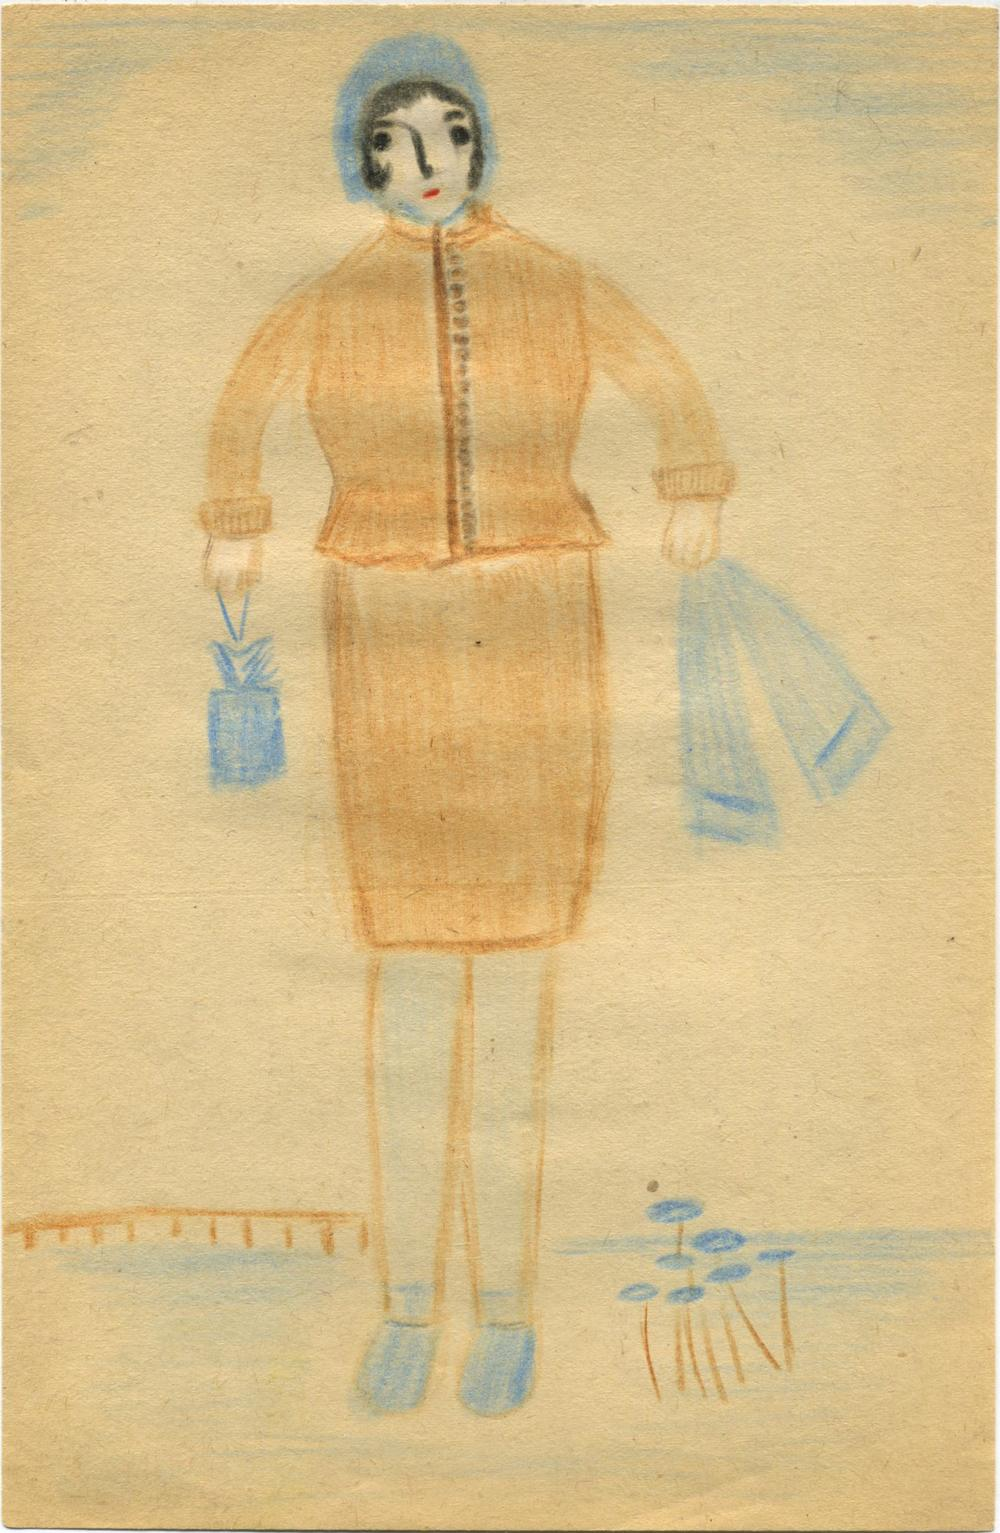 Bertha Wuilleumier    Untitled  , 1953 Color pencil on paper 8.2 x 5.3 inches 20.8 x 13.5 cm BWu 11